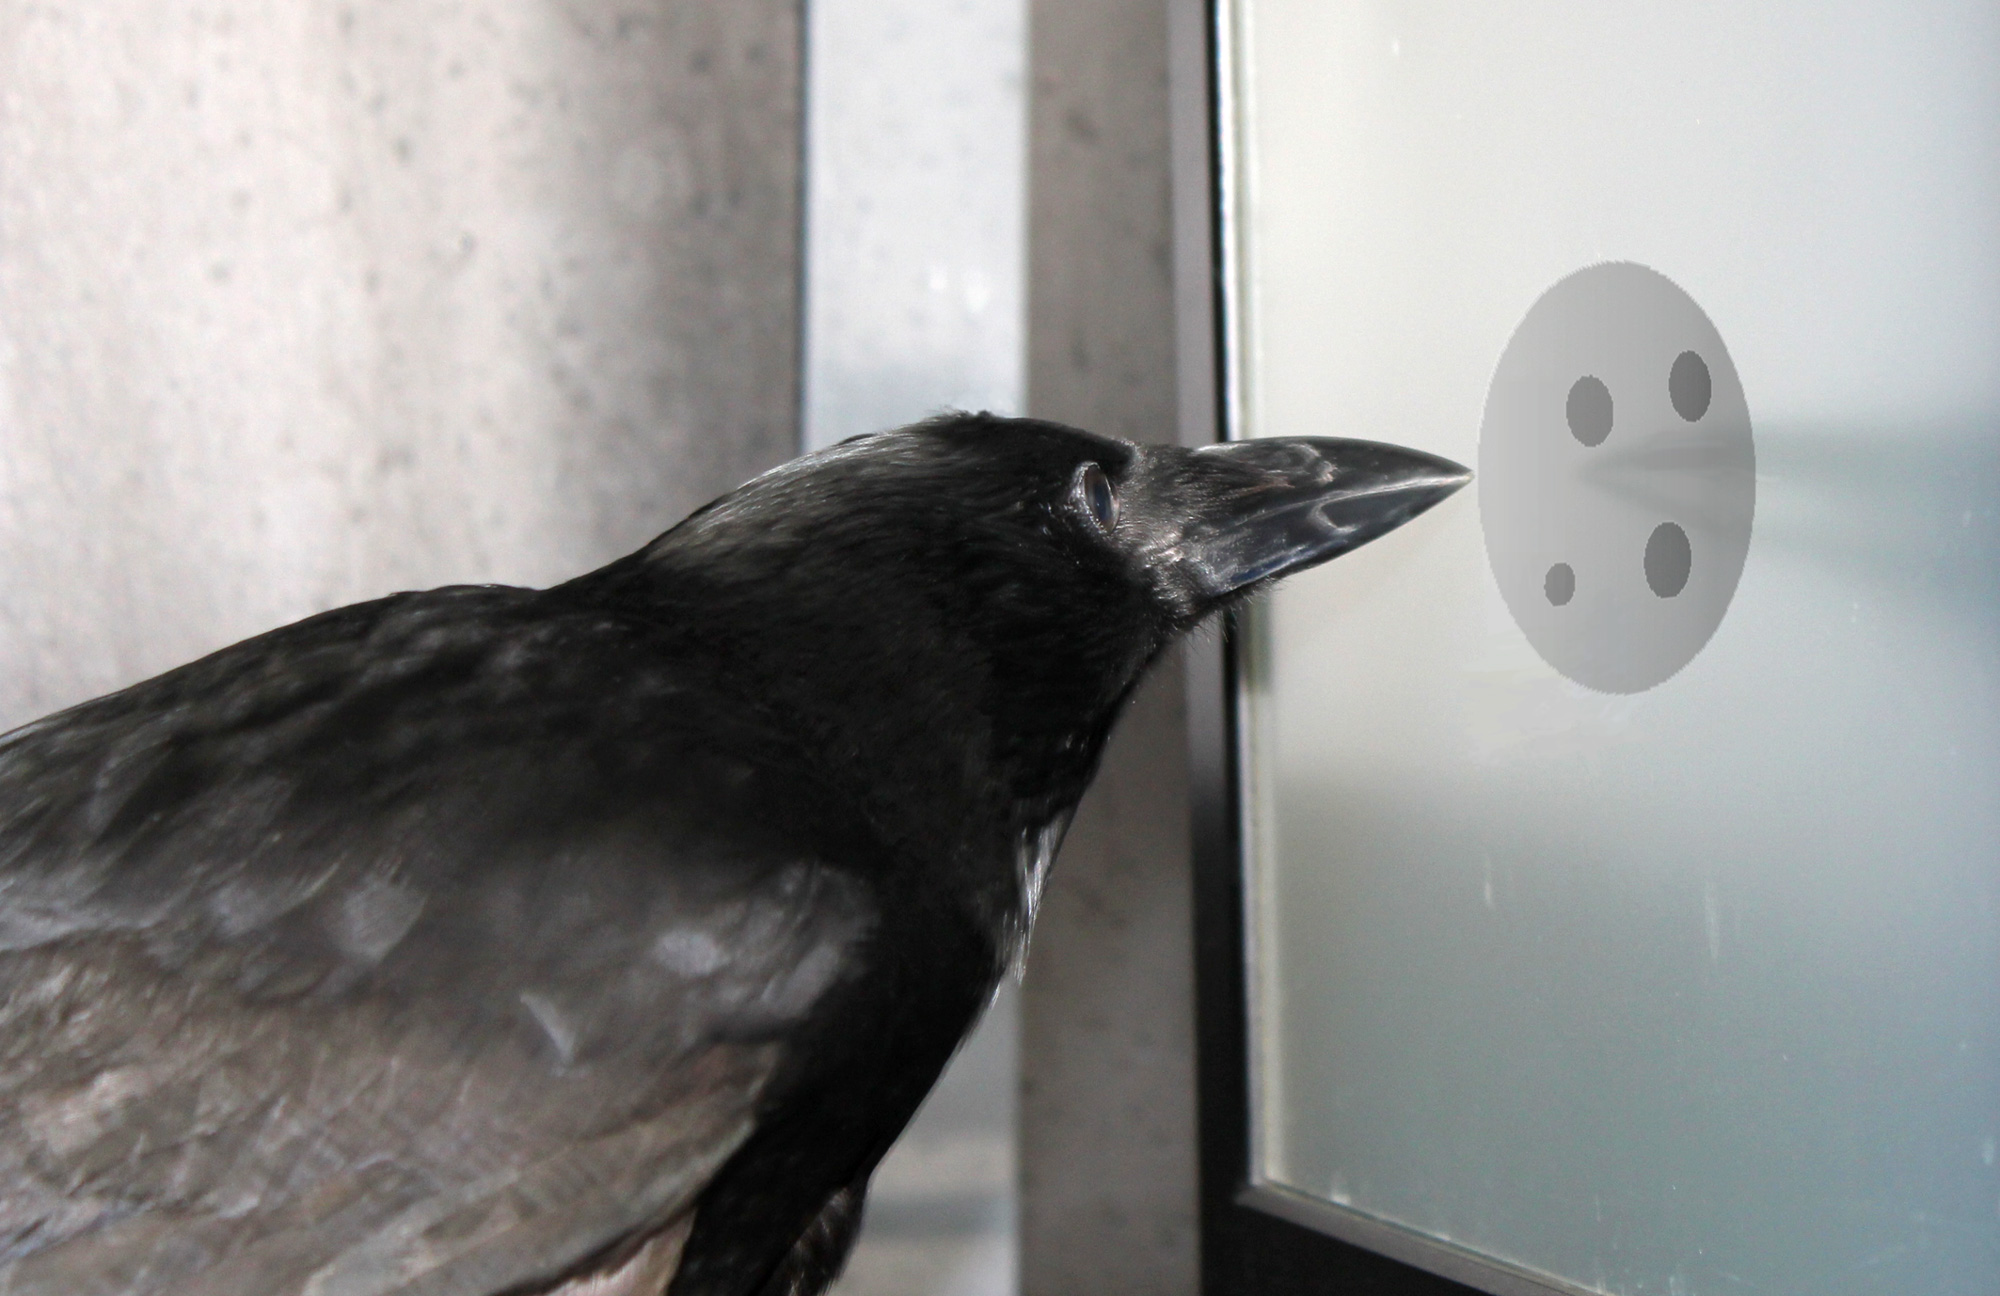 Photo from an experiment testing the counting abilities of crows, with a crow looking at a set of four dots.